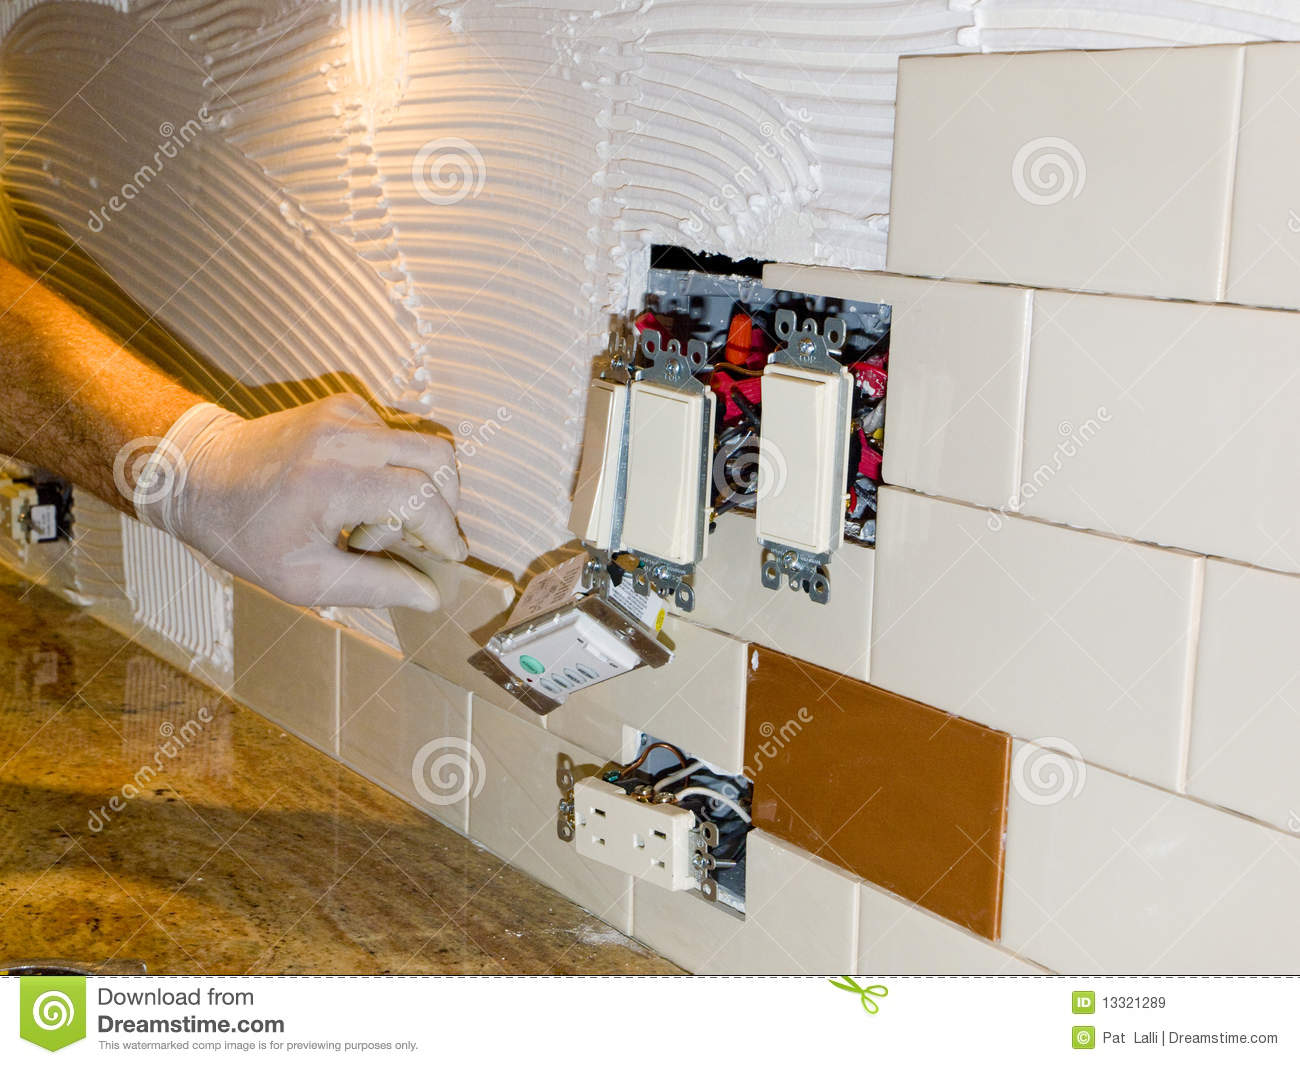 How To Install Ceramic Tile In Kitchen Wall